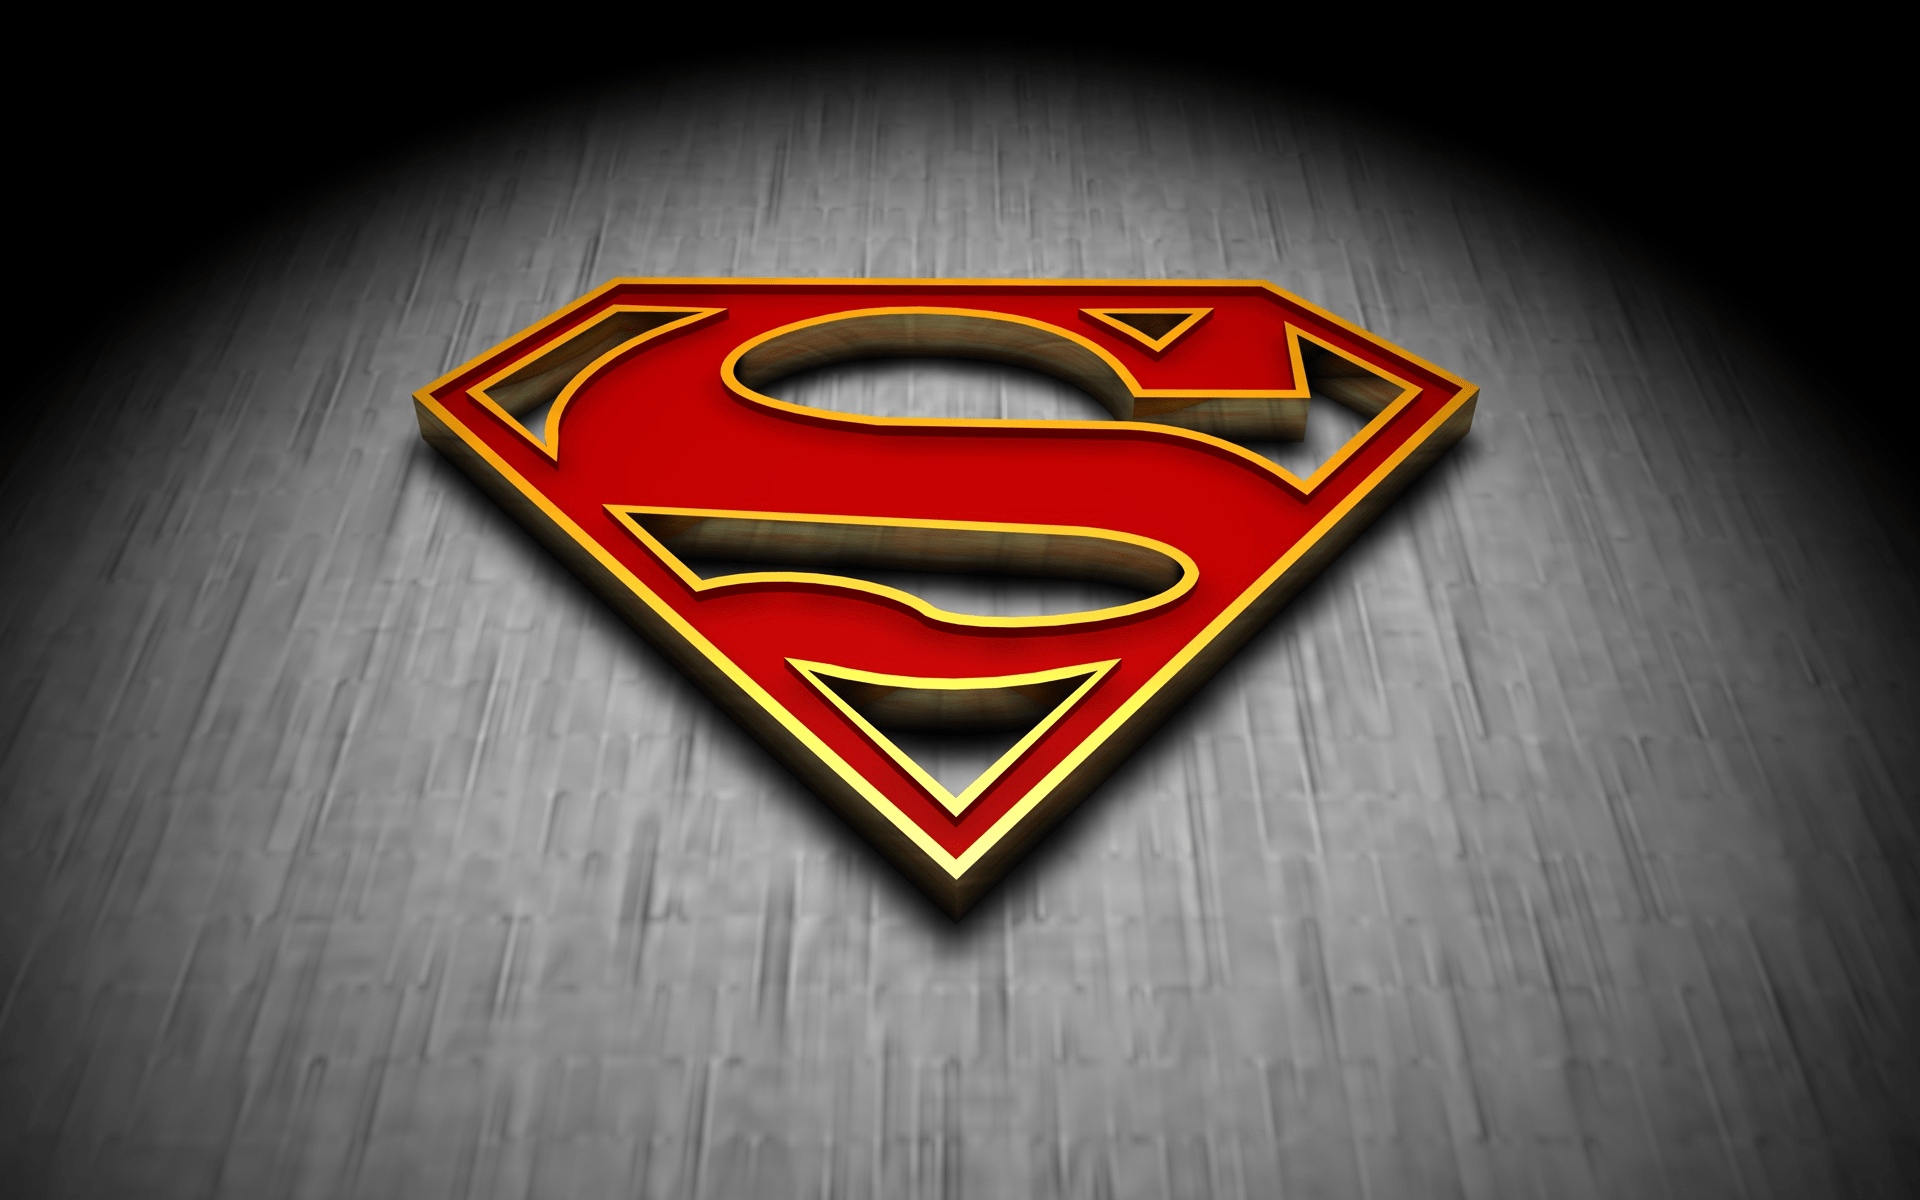 3d Fire Wallpaper Desktop Logo Superman Wallpaper Hd Free Download Pixelstalk Net